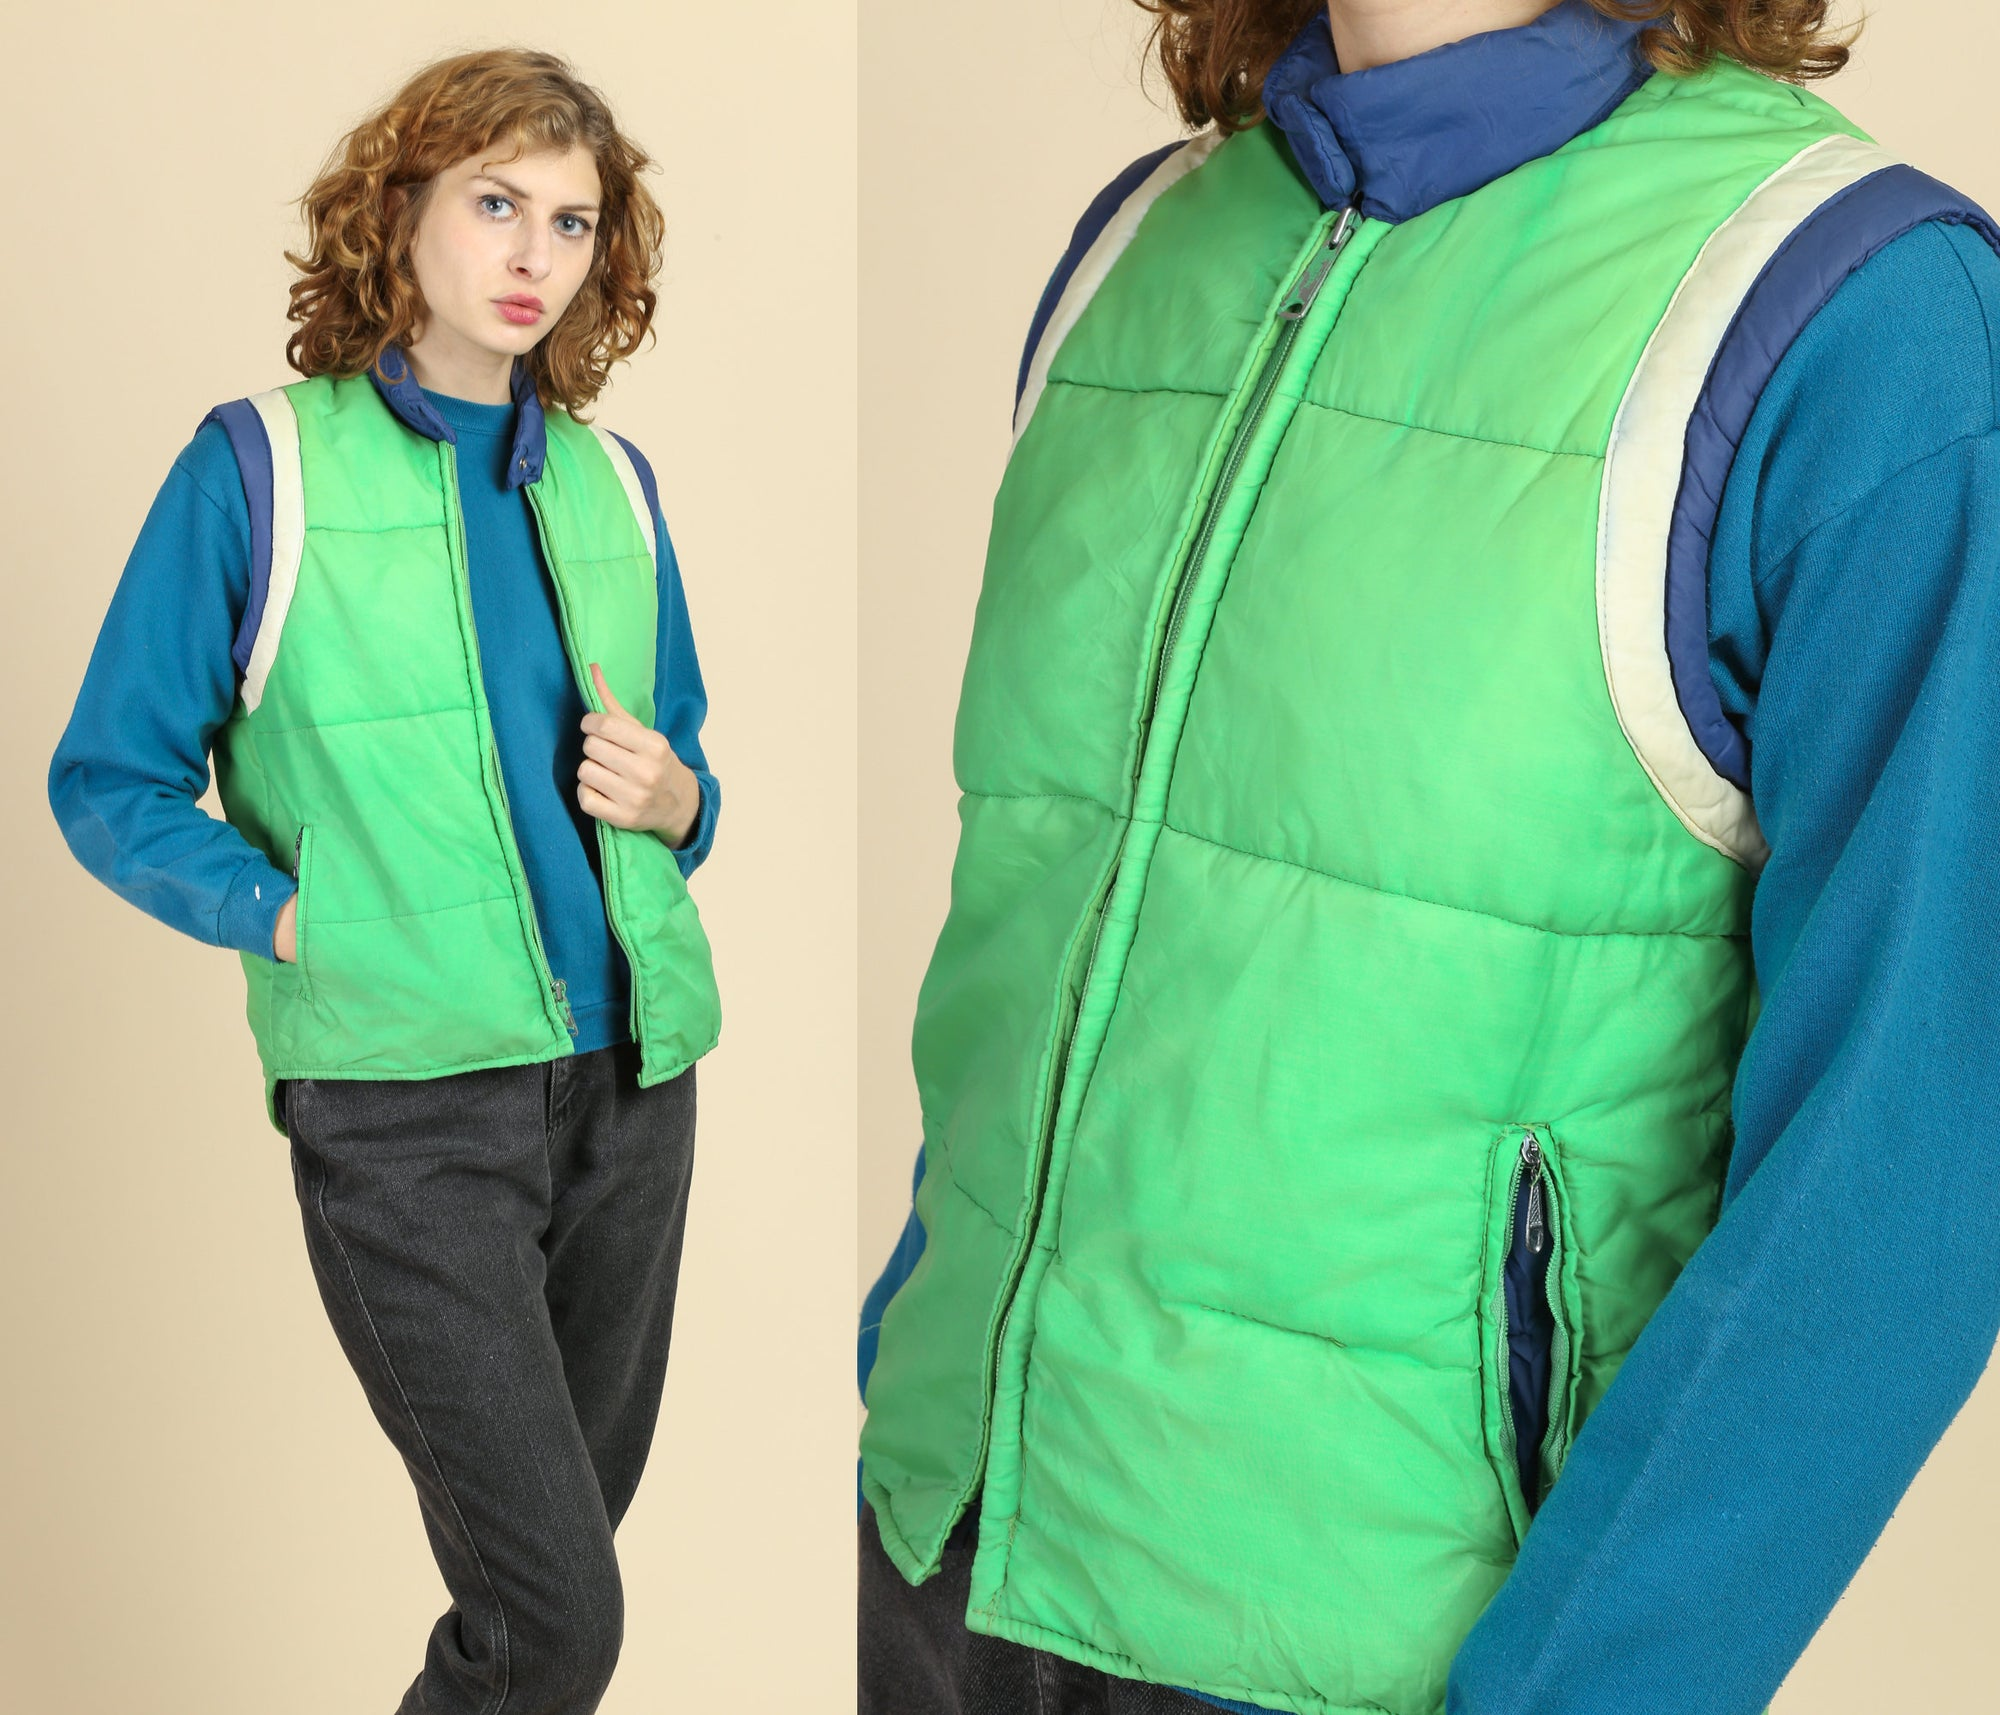 70s Retro Striped Puffer Vest - Small